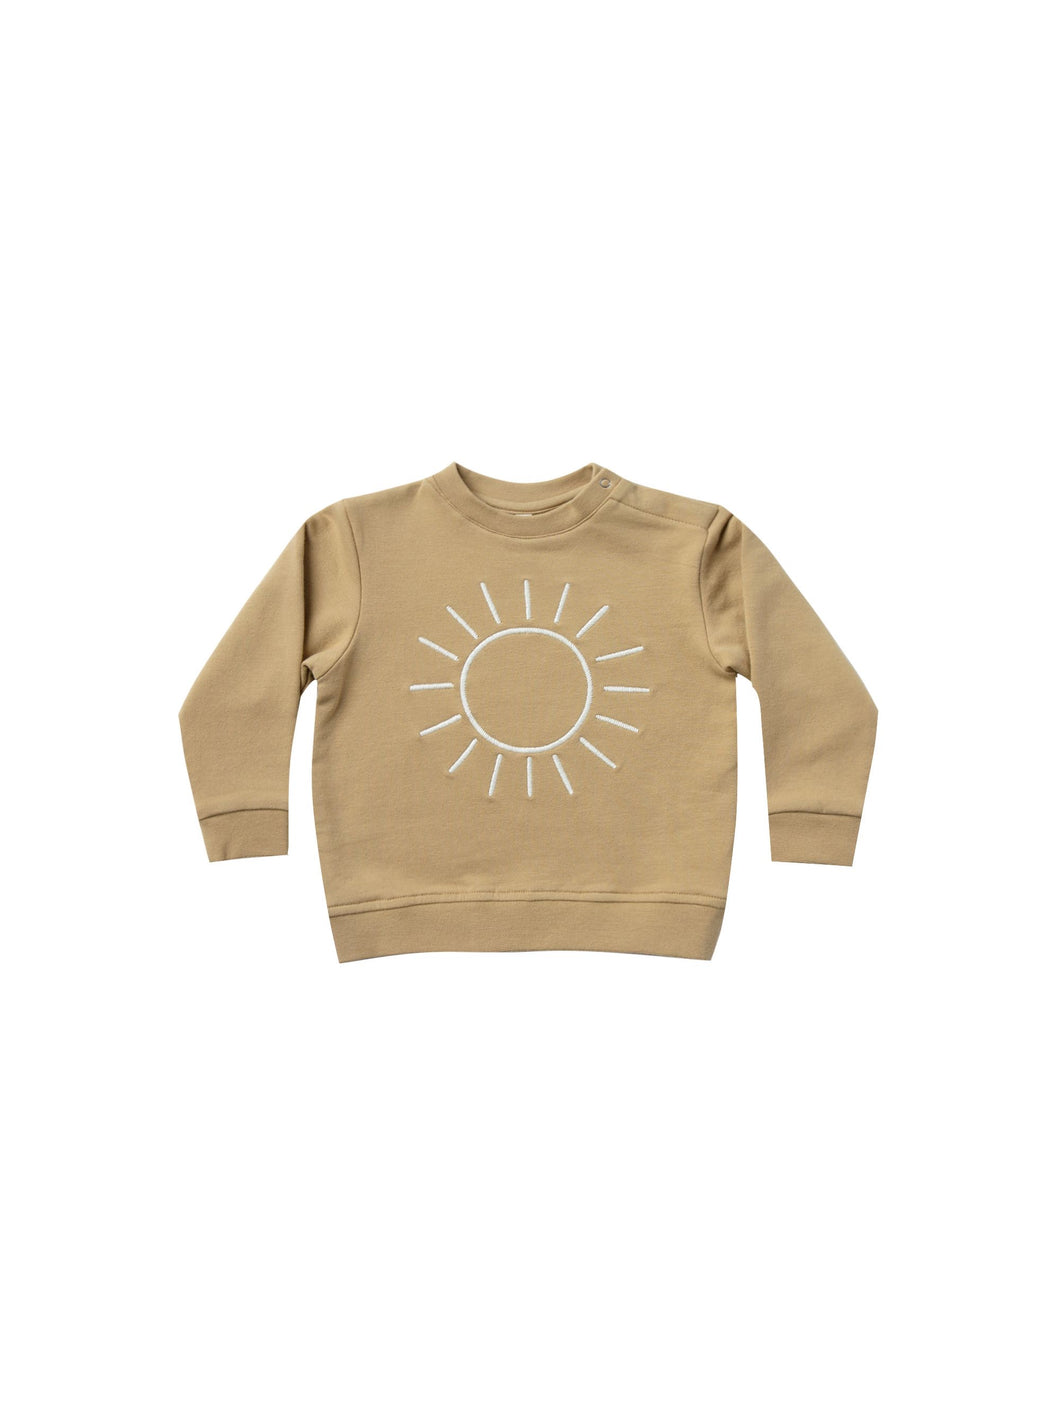 Quincy Mae fleece basic sweatshirt - honey